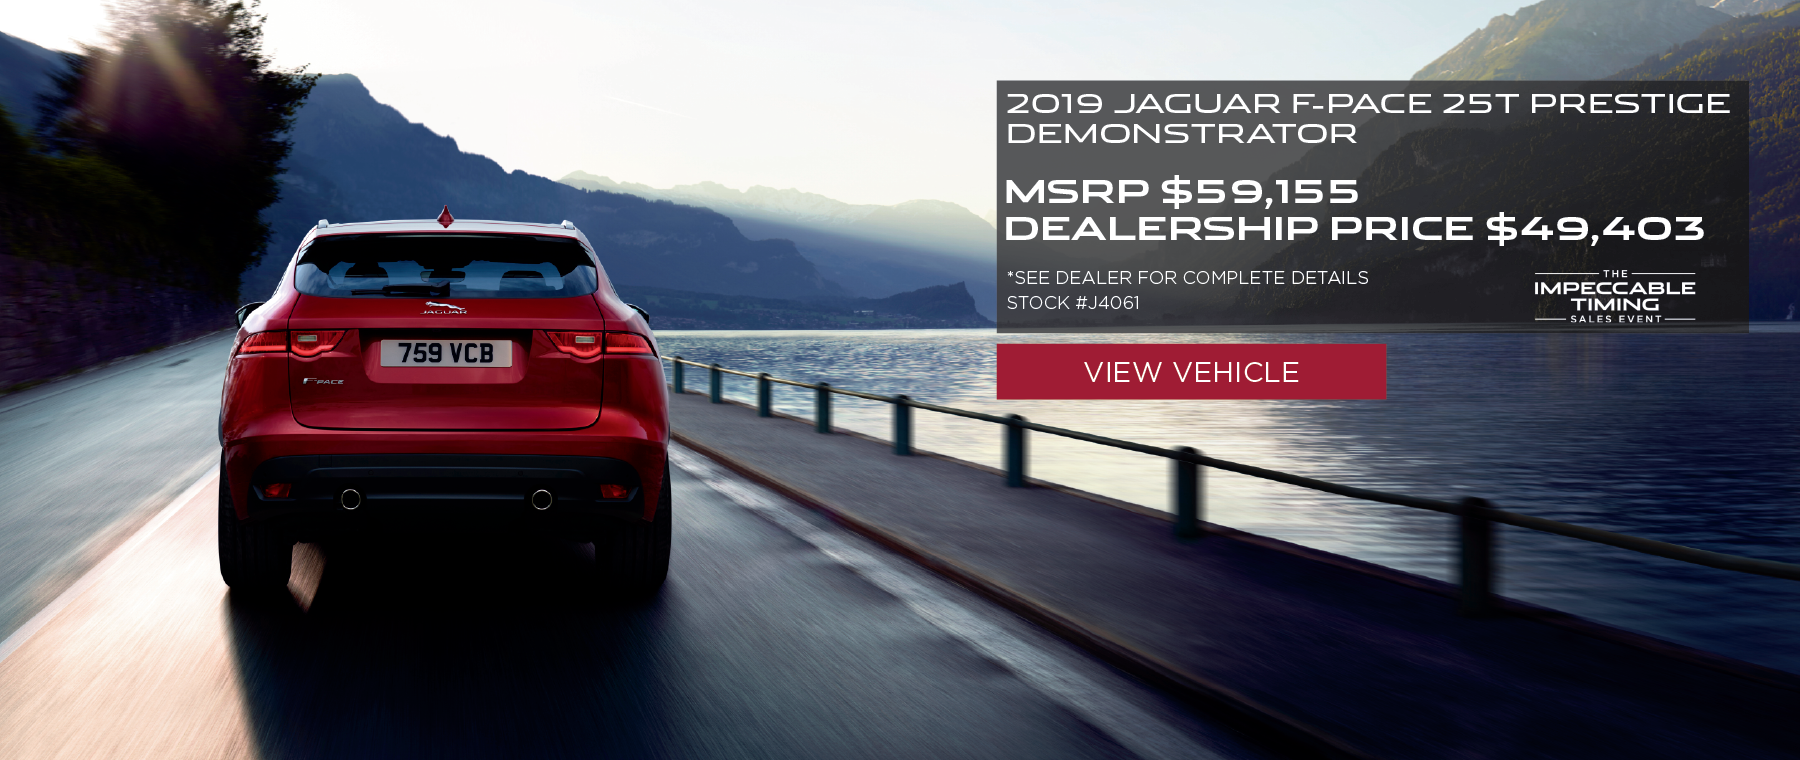 Red 2019 Jaguar F-PACE 25t Prestige Stock on bridge. MSRP $59,155 Dealership Price $49,403 Stock # J4061 . Click to view vehicle. See dealer for complete details.